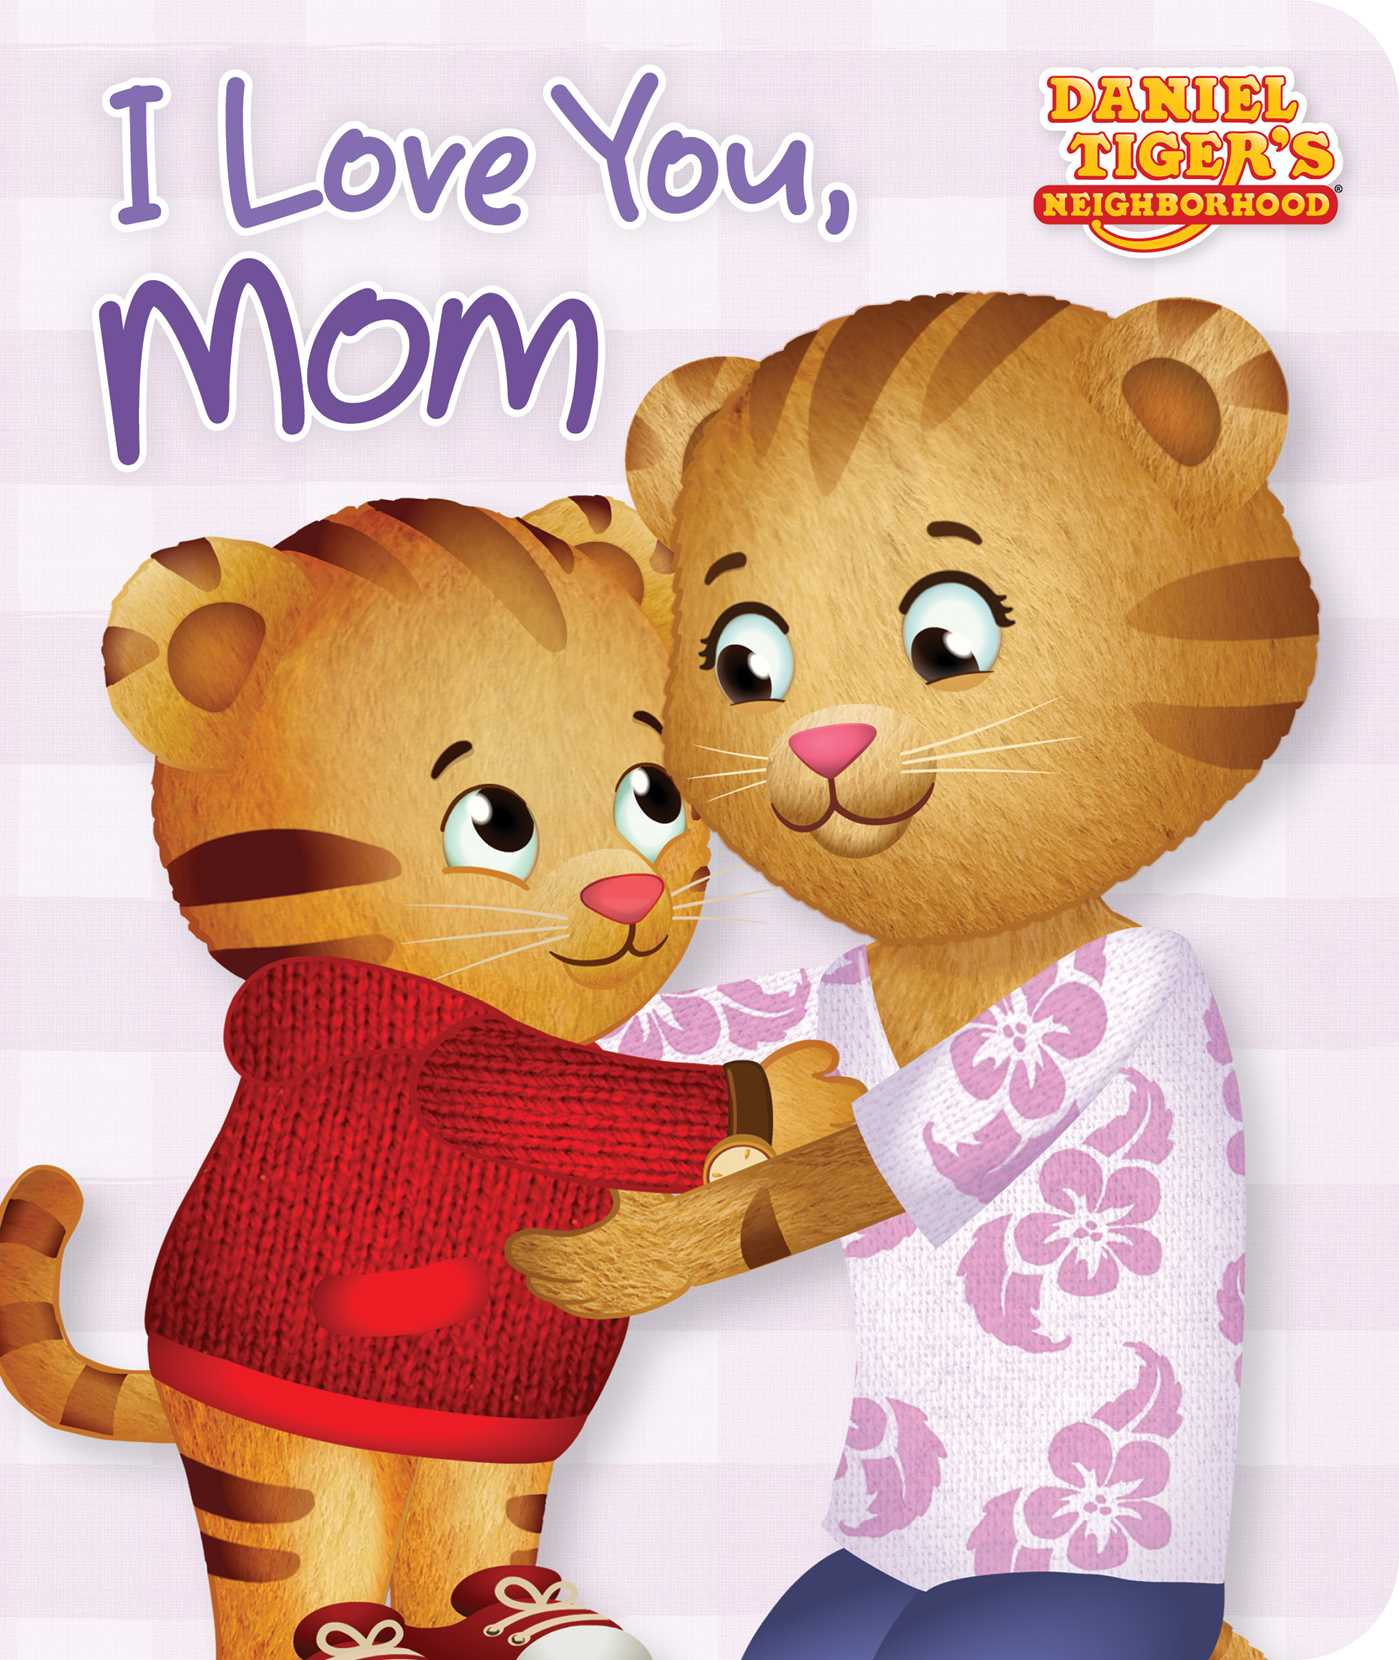 book cover image jpg i love you mom